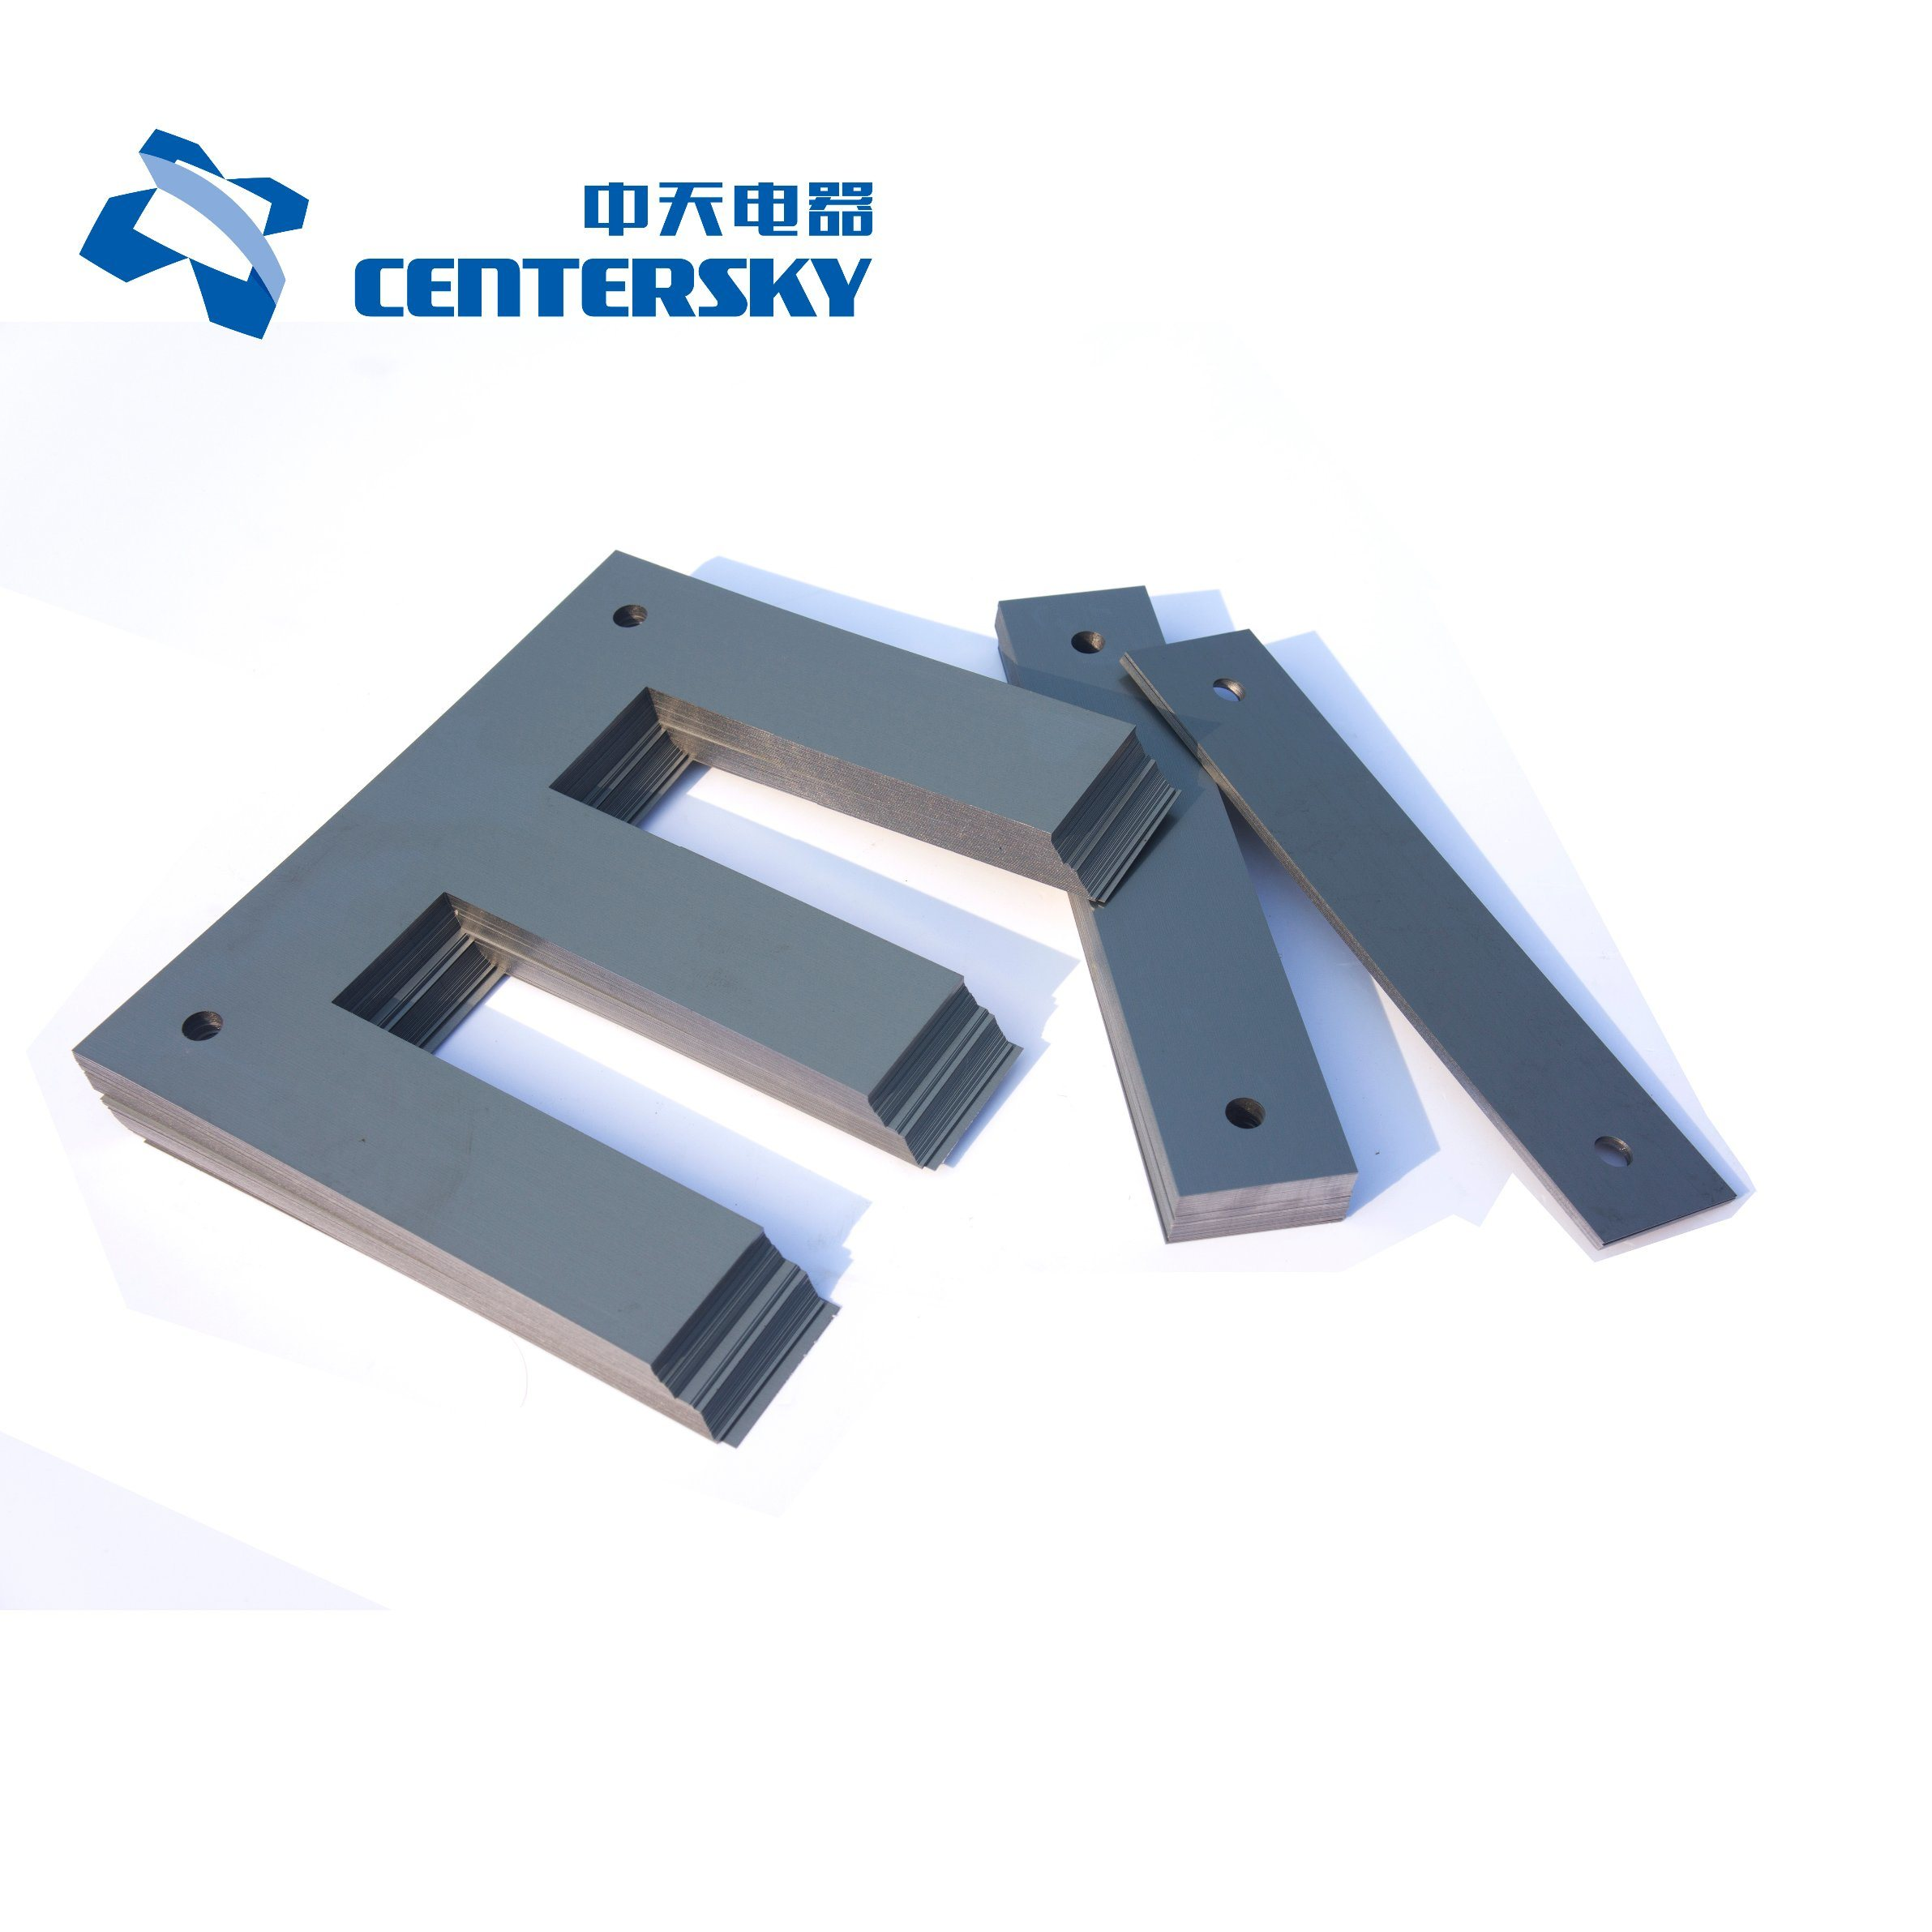 Centersky Ei Silicon Steel CRGO Lamination Sheet